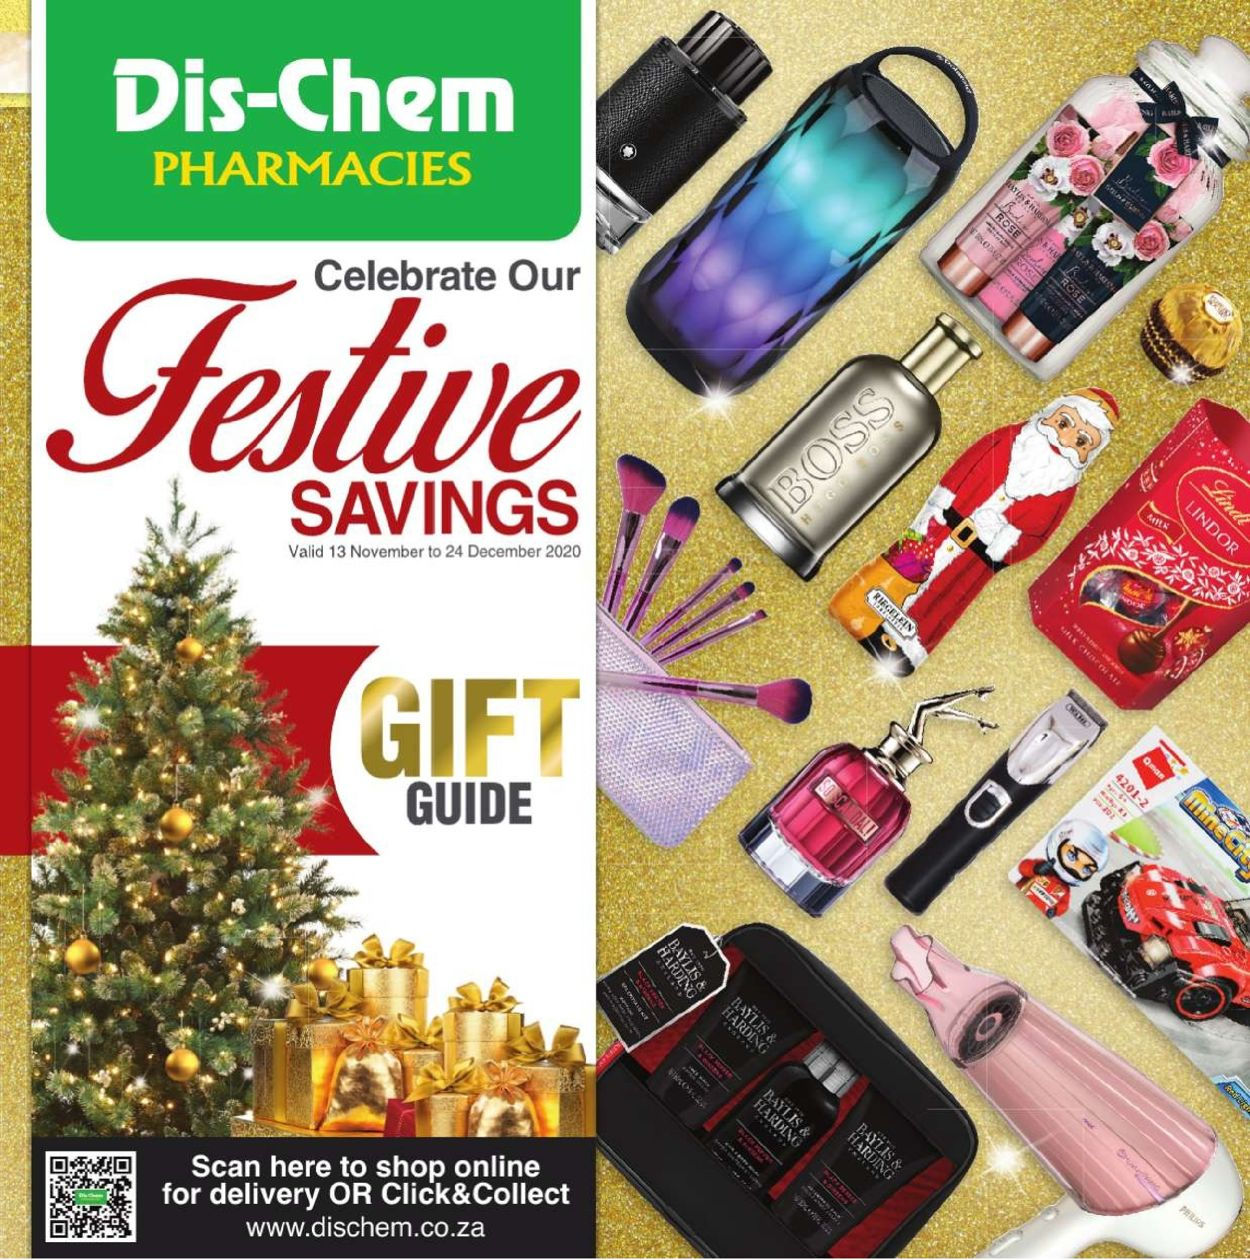 Dis-Chem Holidays 2020 Catalogue - 2020/11/13-2020/12/24